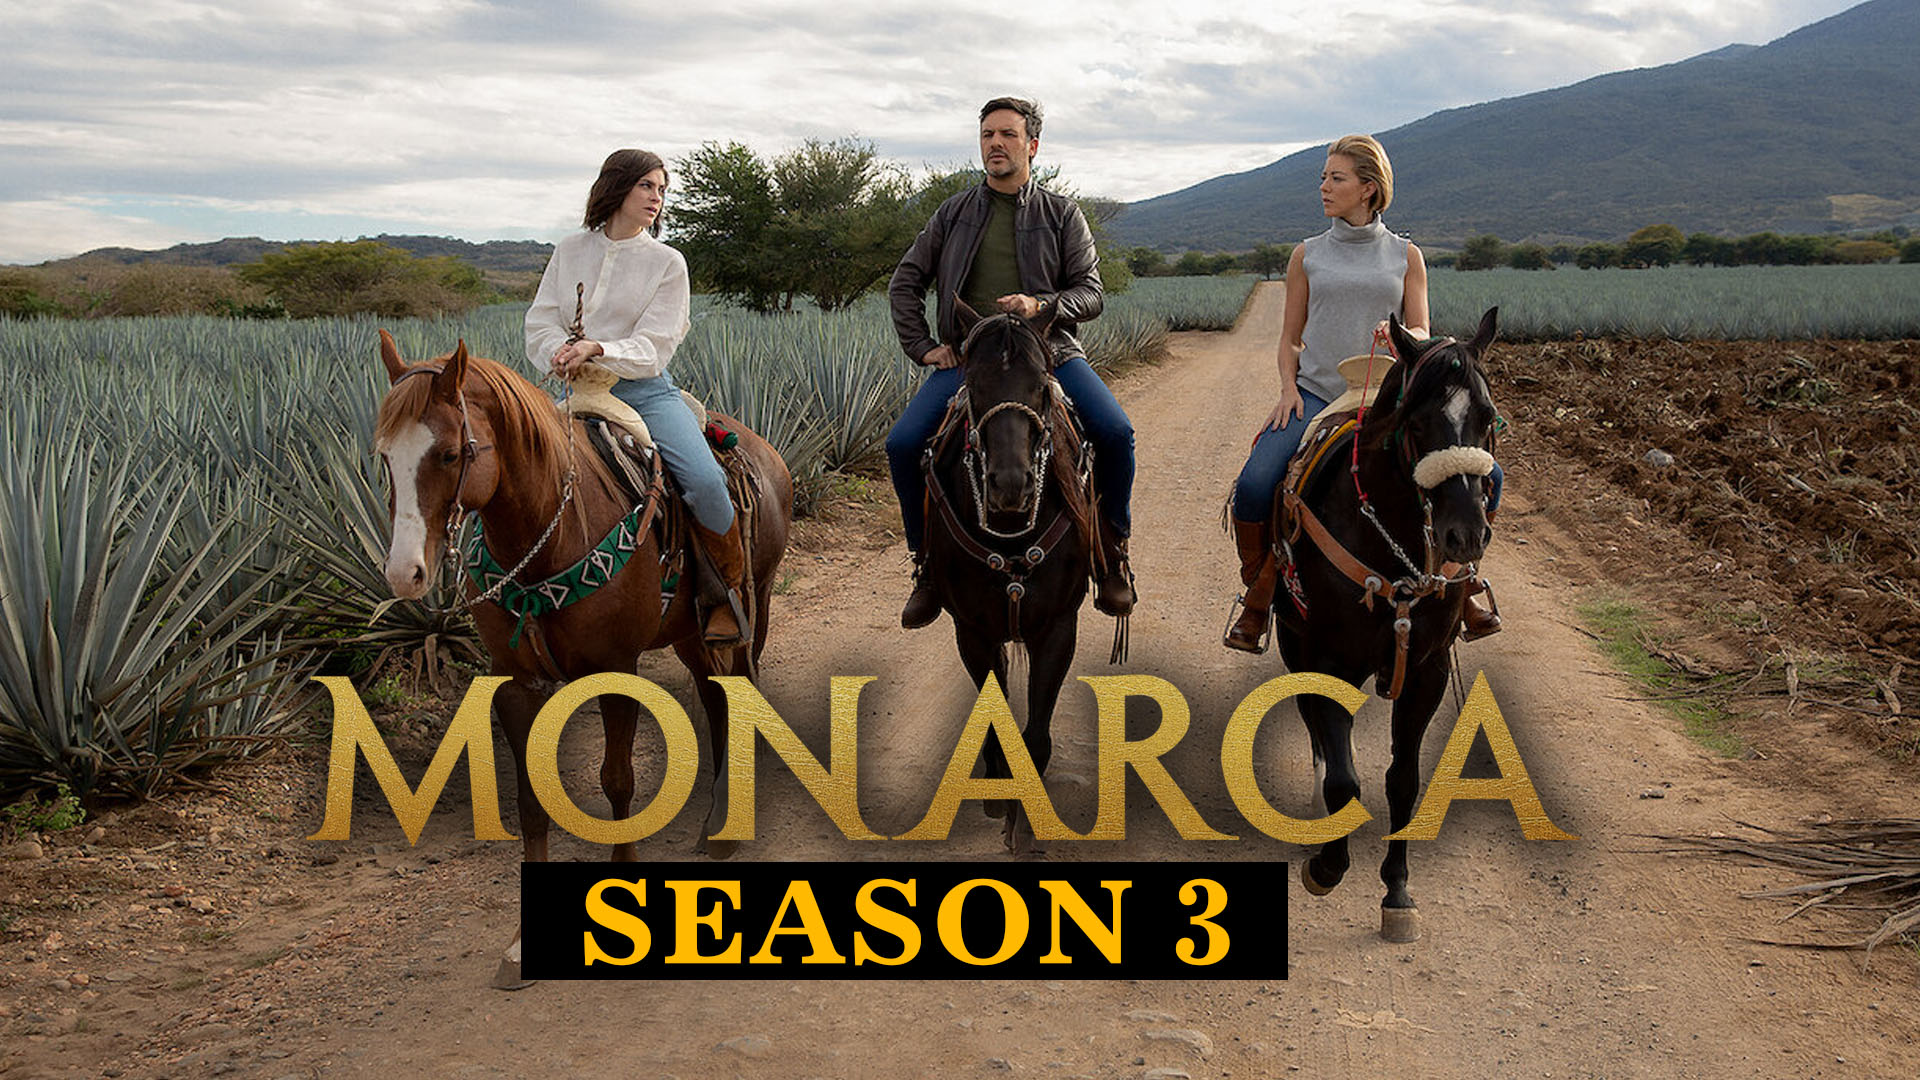 Will Netflix Renew Monarca For The Third Season? All You Need To Know